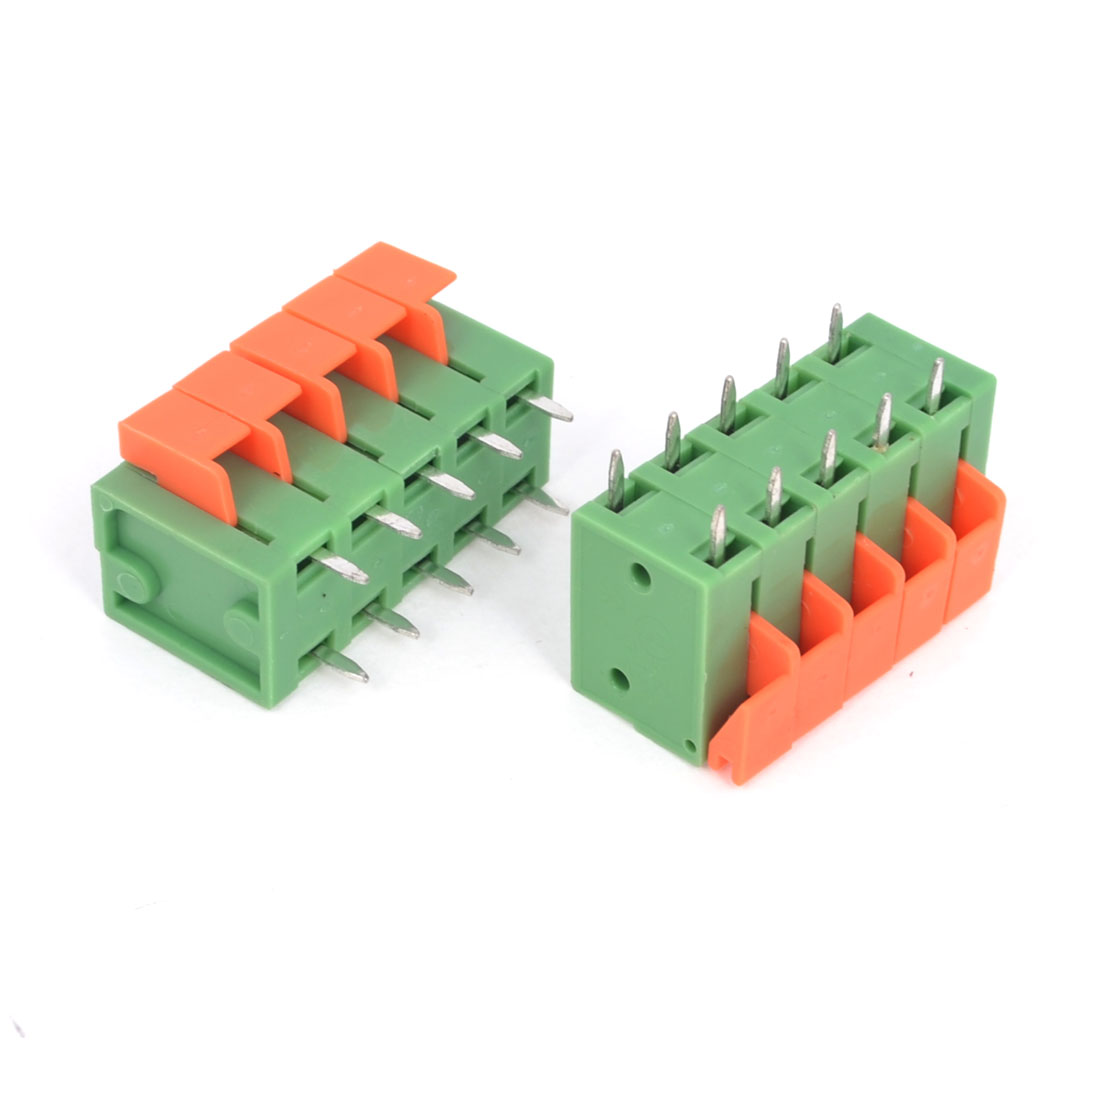 2PCS 300V 10A 5.08mm Pitch 5P Double Row PCB Screwless Terminal Block Connector Green